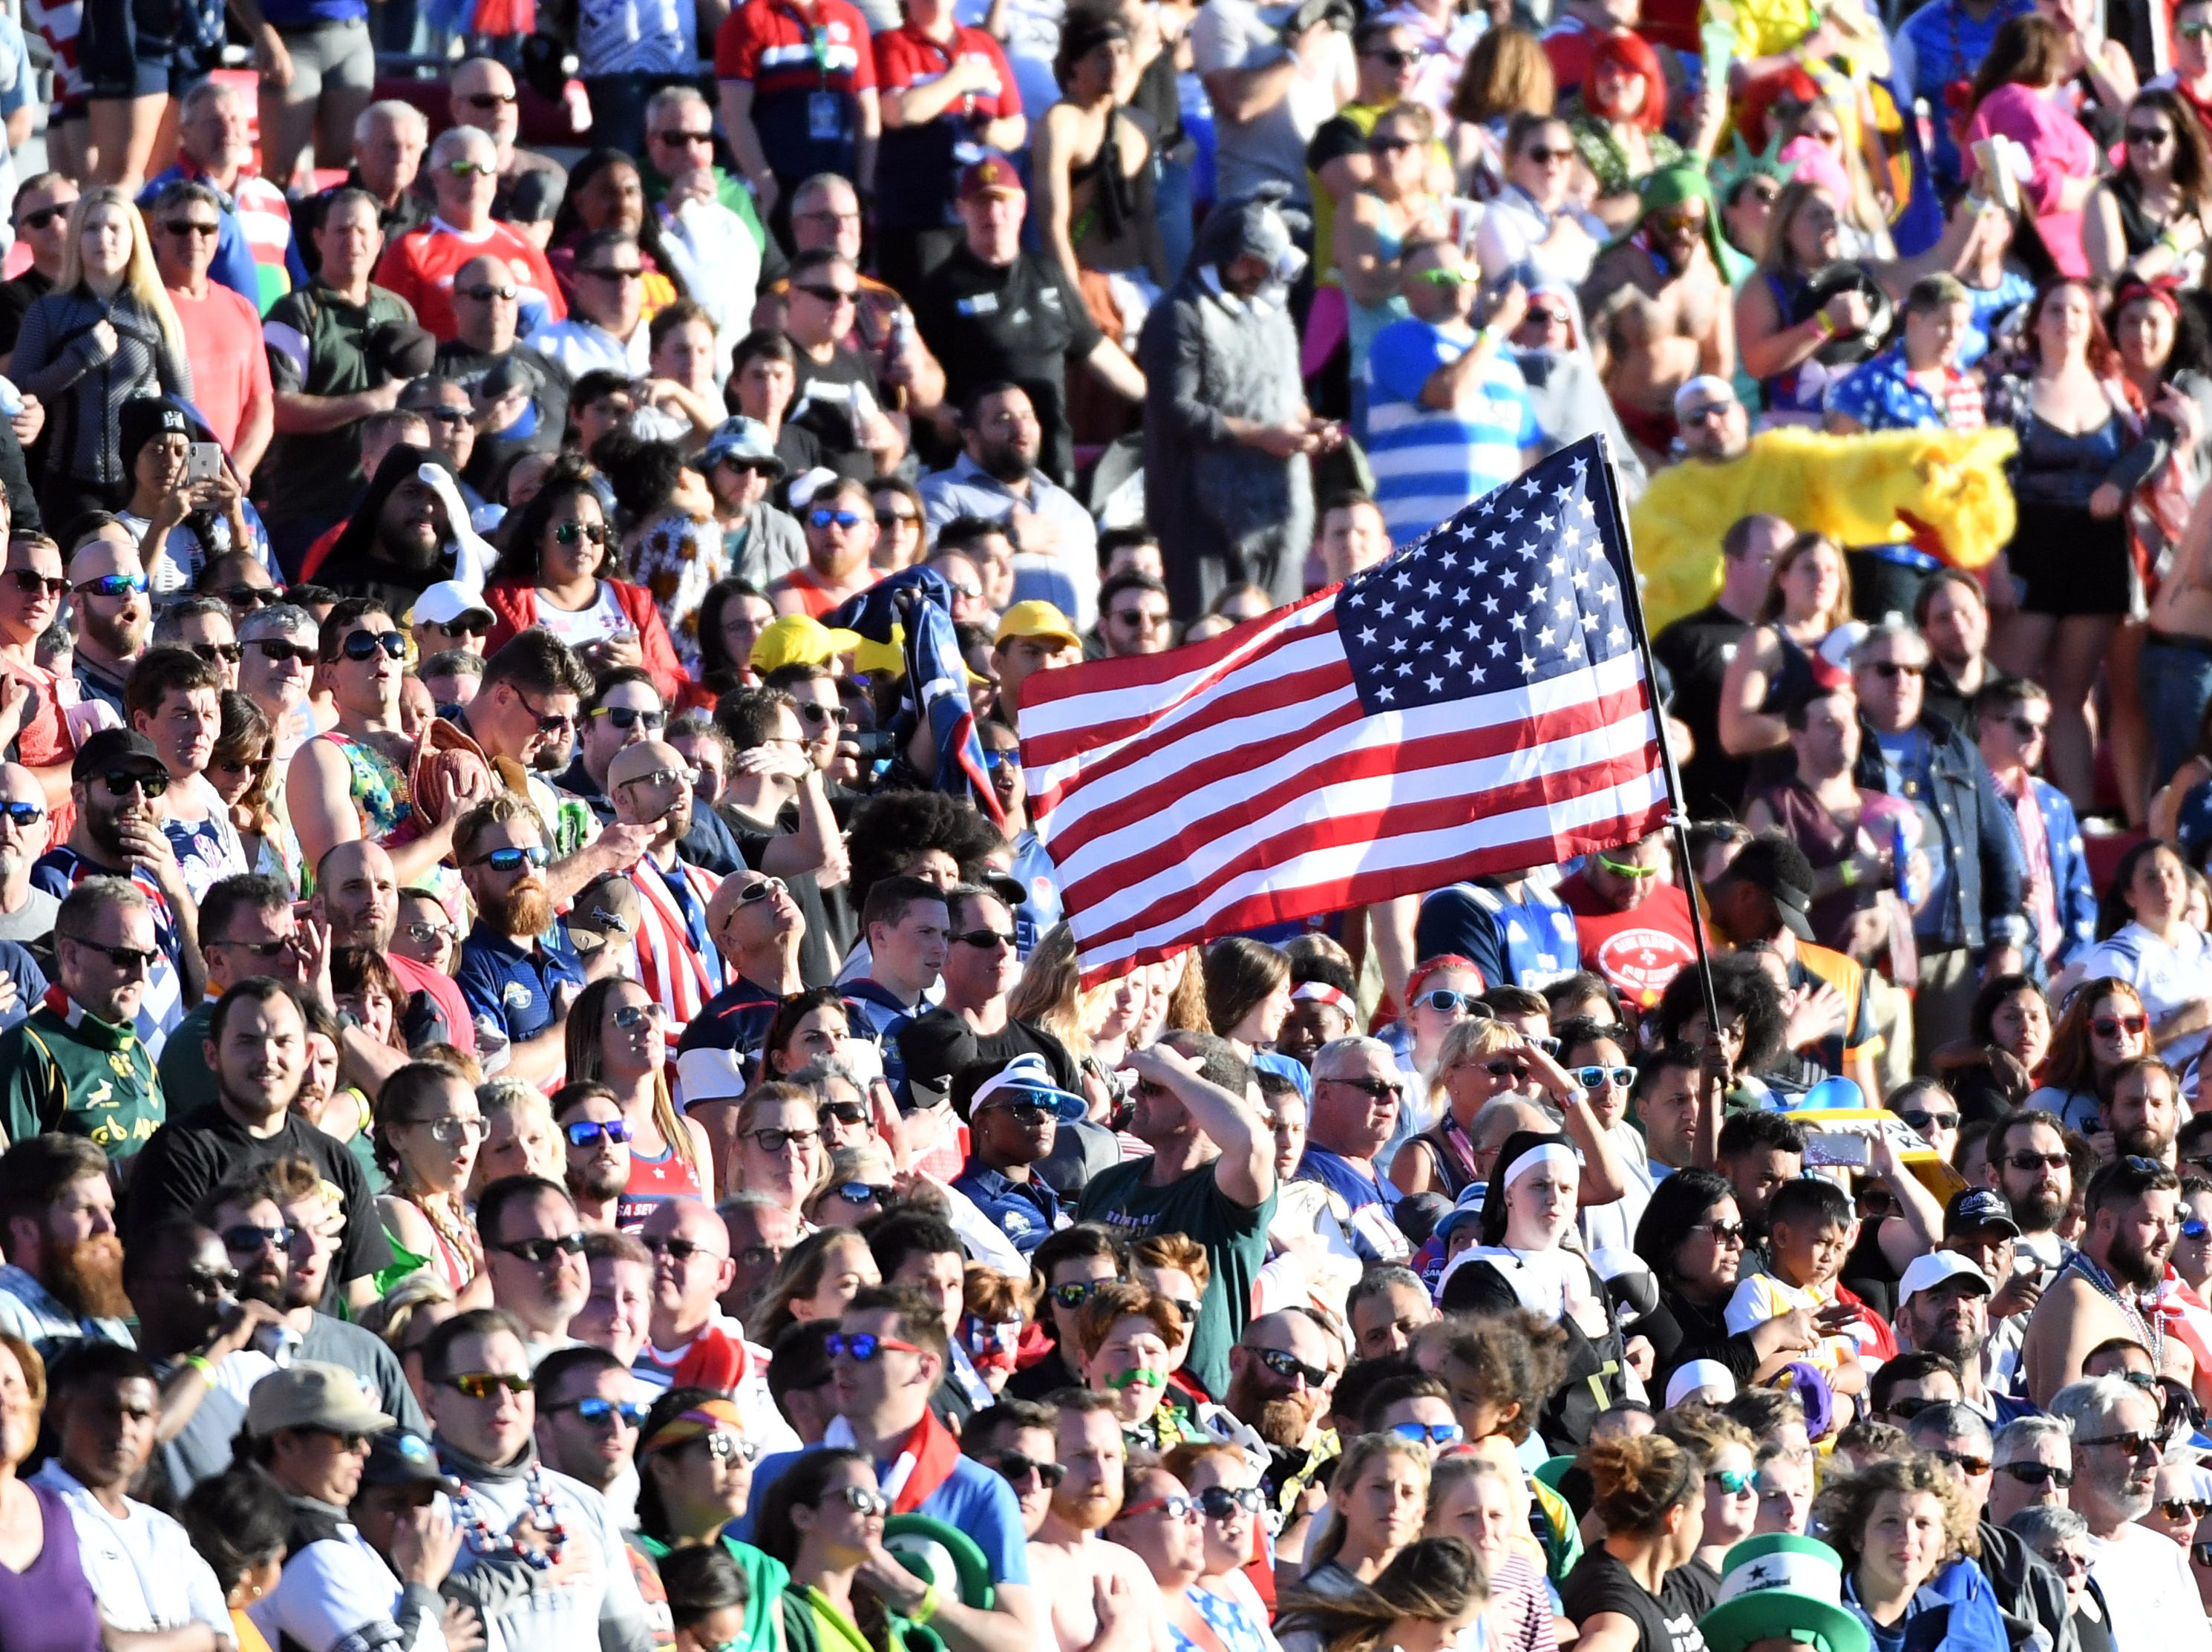 A fan waves an American flag as the national anthem of the United States is performed before the Cup Final match between the United States and Samoa during the USA Sevens Rugby tournament at Sam Boyd Stadium on March 3, 2019 in Las Vegas, Nevada. The United States won 27-0. A. Jon Prusmack revived the USA Sevens, moved it to Las Vegas and grew it to one of the most popular tour stops on the international calendar.